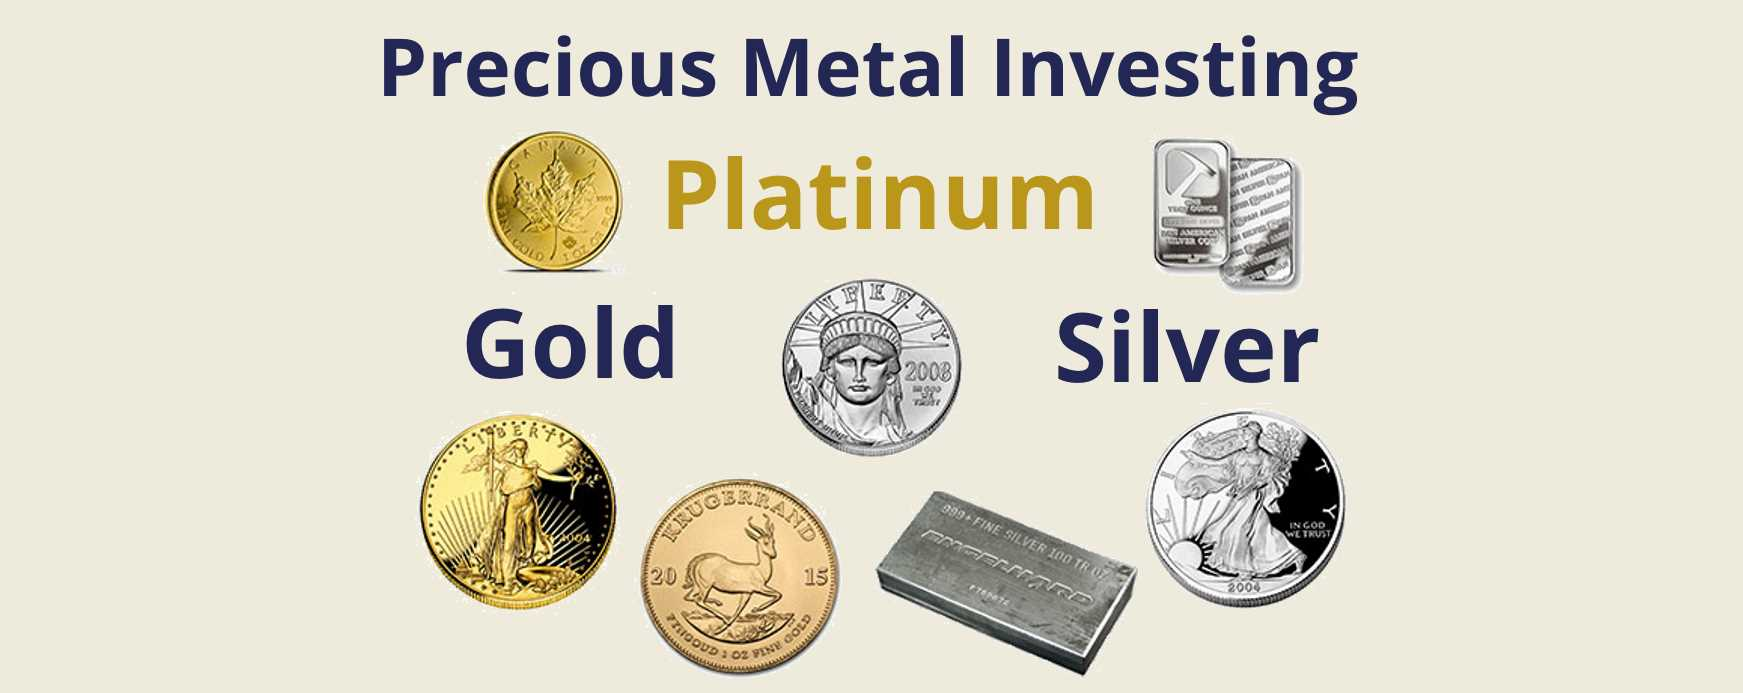 University Coin and Jewelry buys and sells investment gems, jewelry pieces, and precious metals. We also trade in stamps and other collectibles.